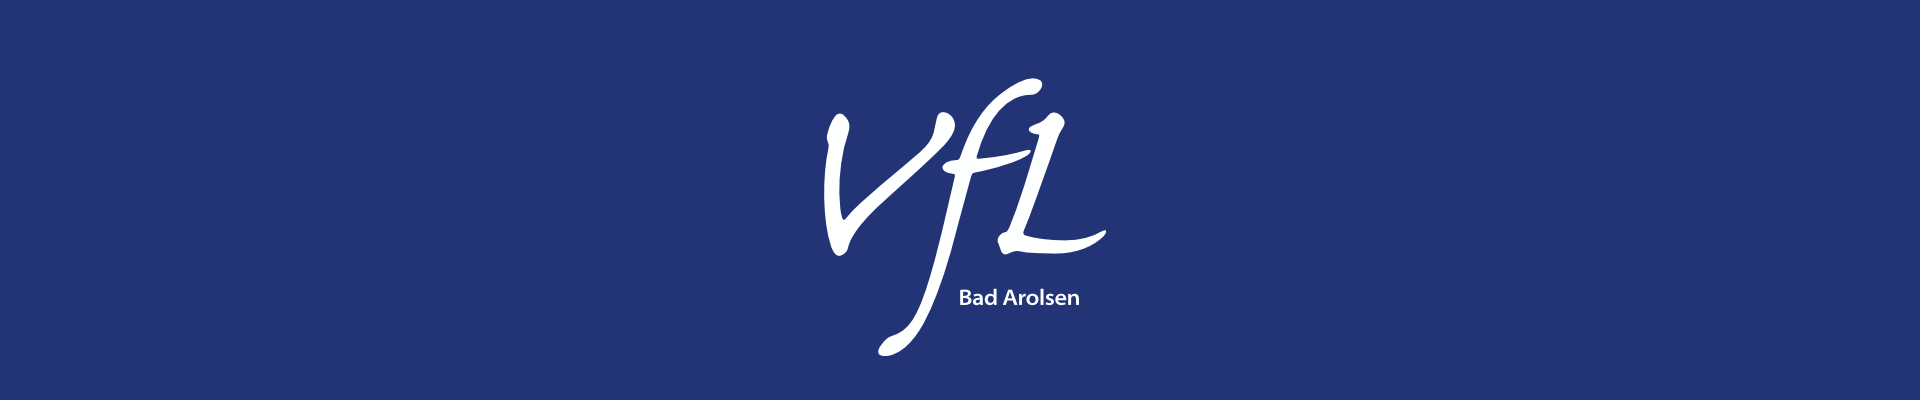 VfL Bad Arolsen